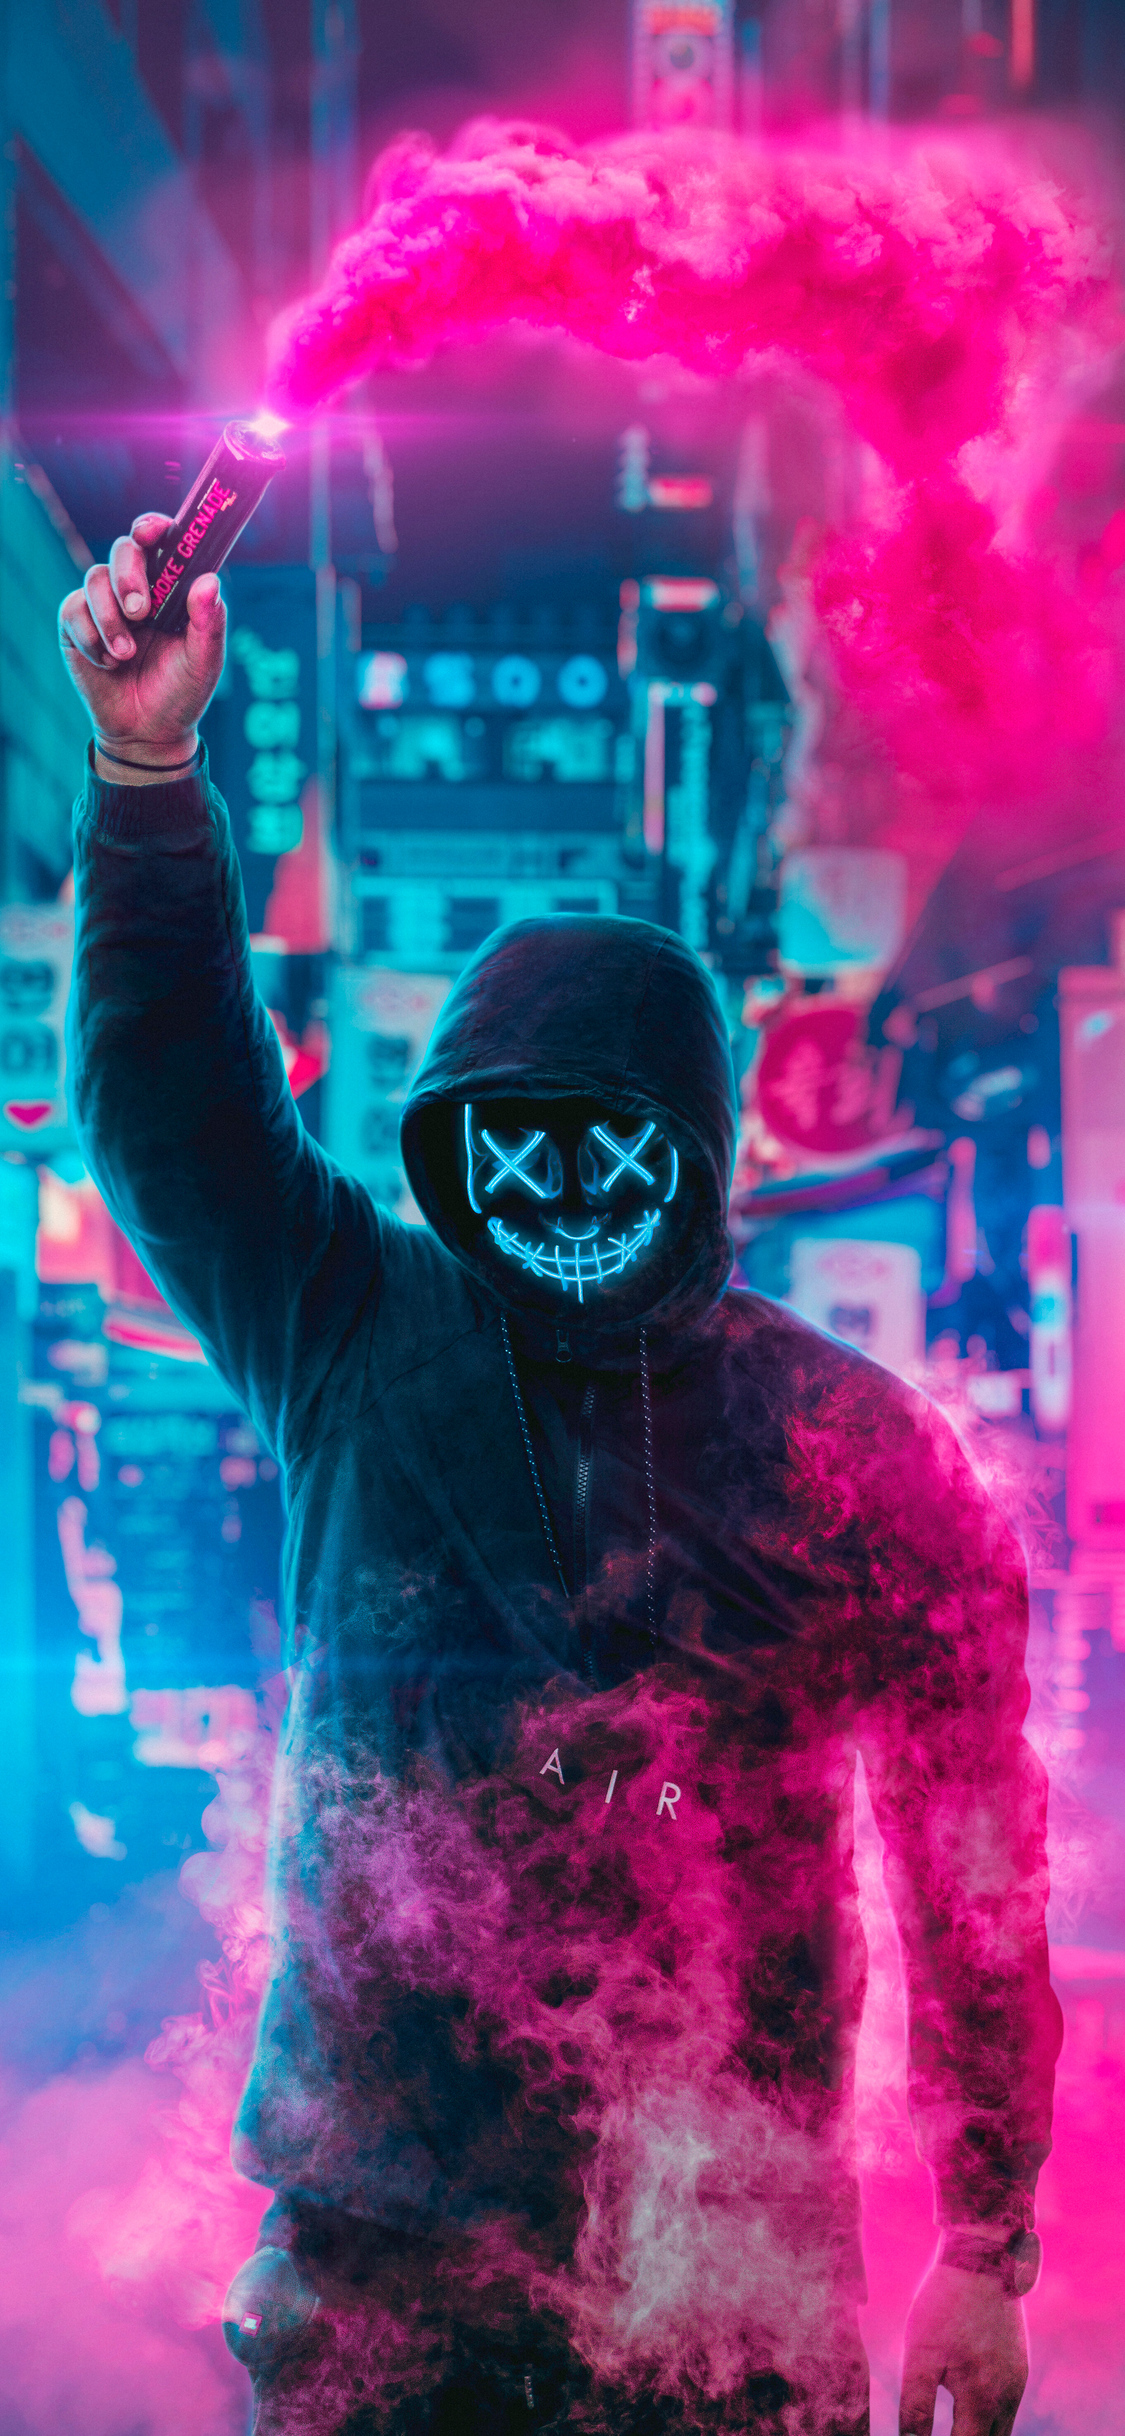 1125x2436 Mask Guy Neon Eye Iphone Xs Iphone 10 Iphone X Hd 4k Wallpapers Images Backgrounds Photos And Pictures